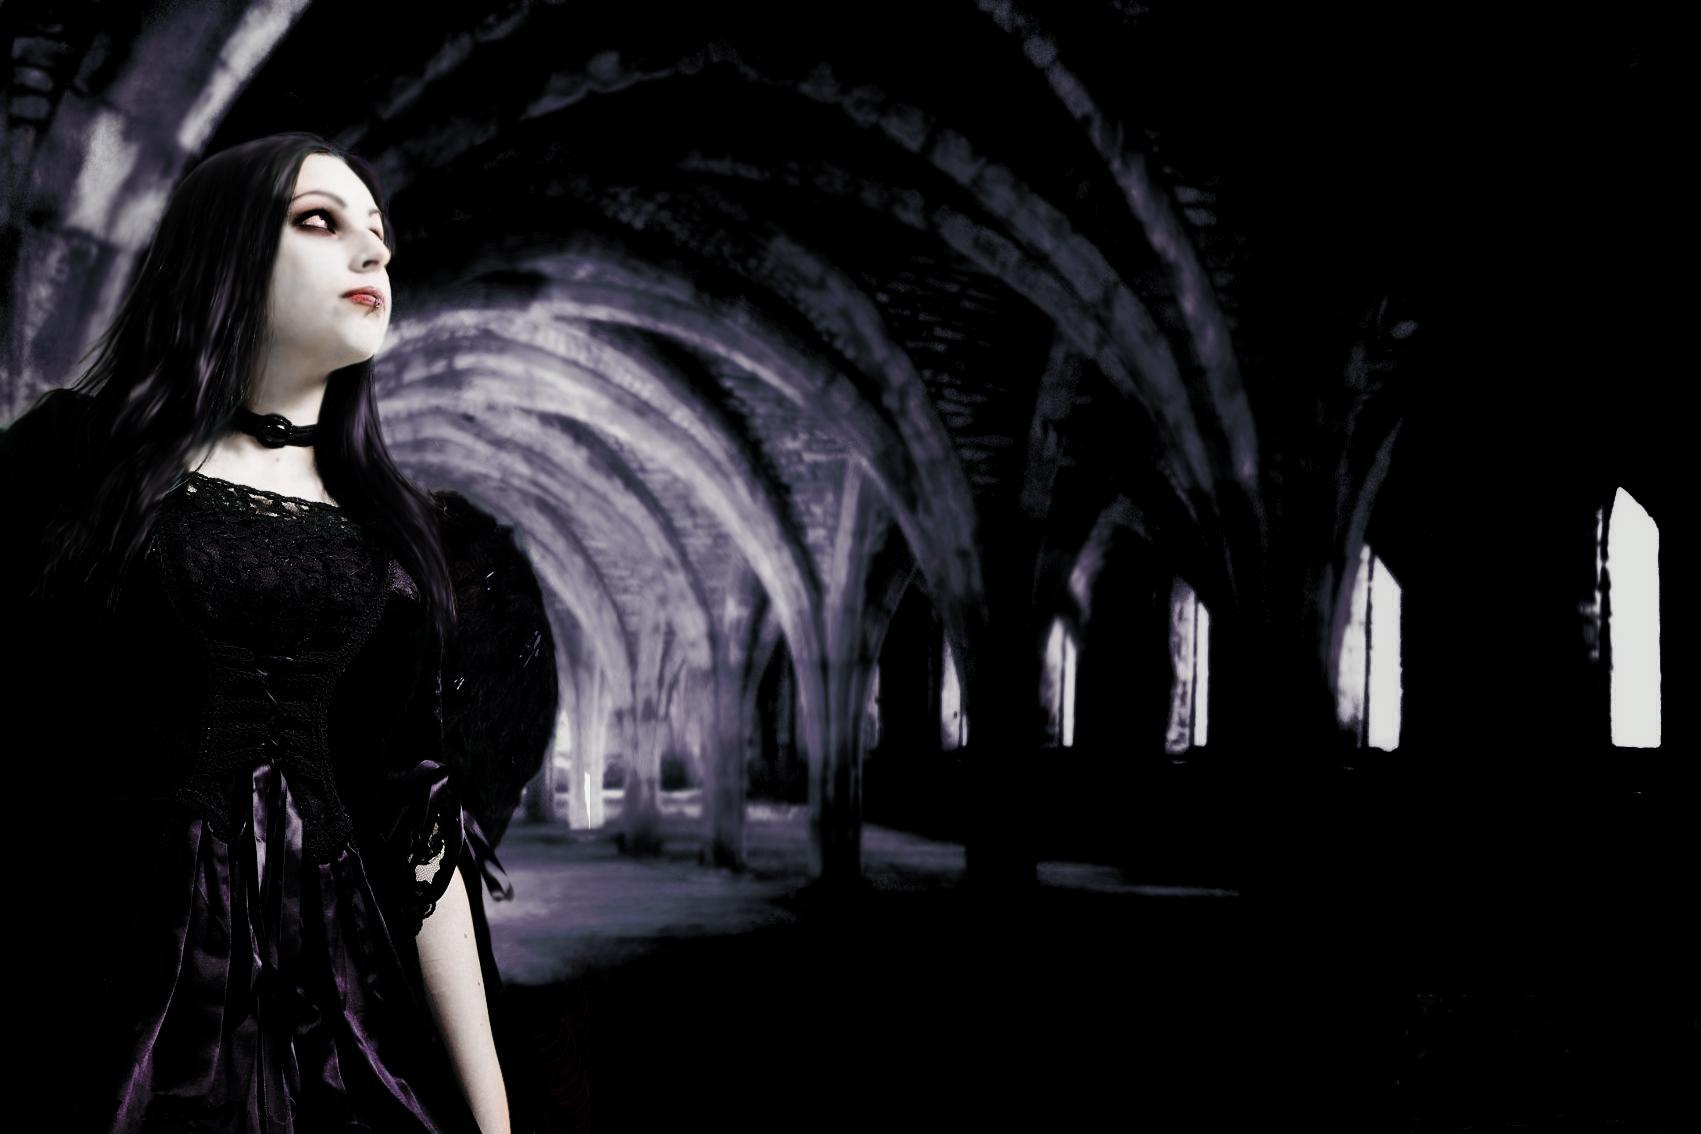 Gothic Vampire Backgrounds Goth Wallpapers - Wall...